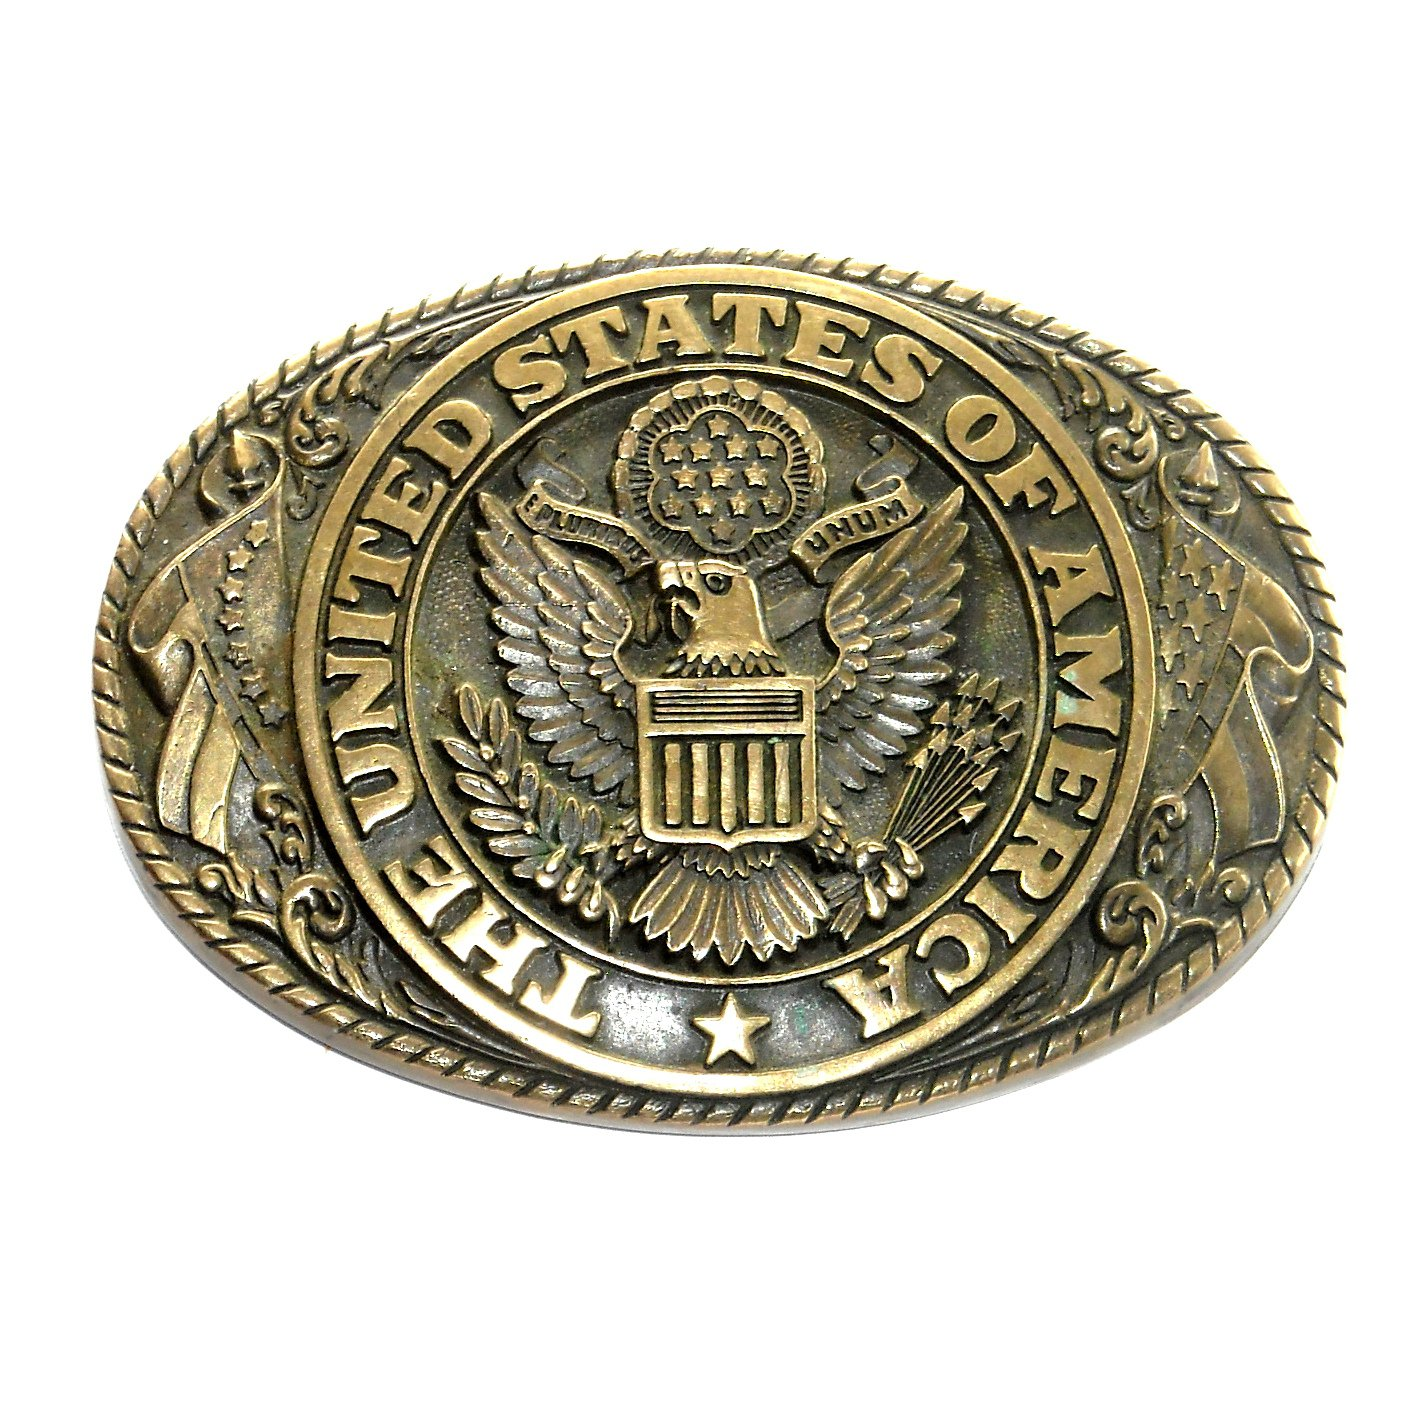 United States Of America Seal Vintage Tony Lama Solid Brass Belt Buckle